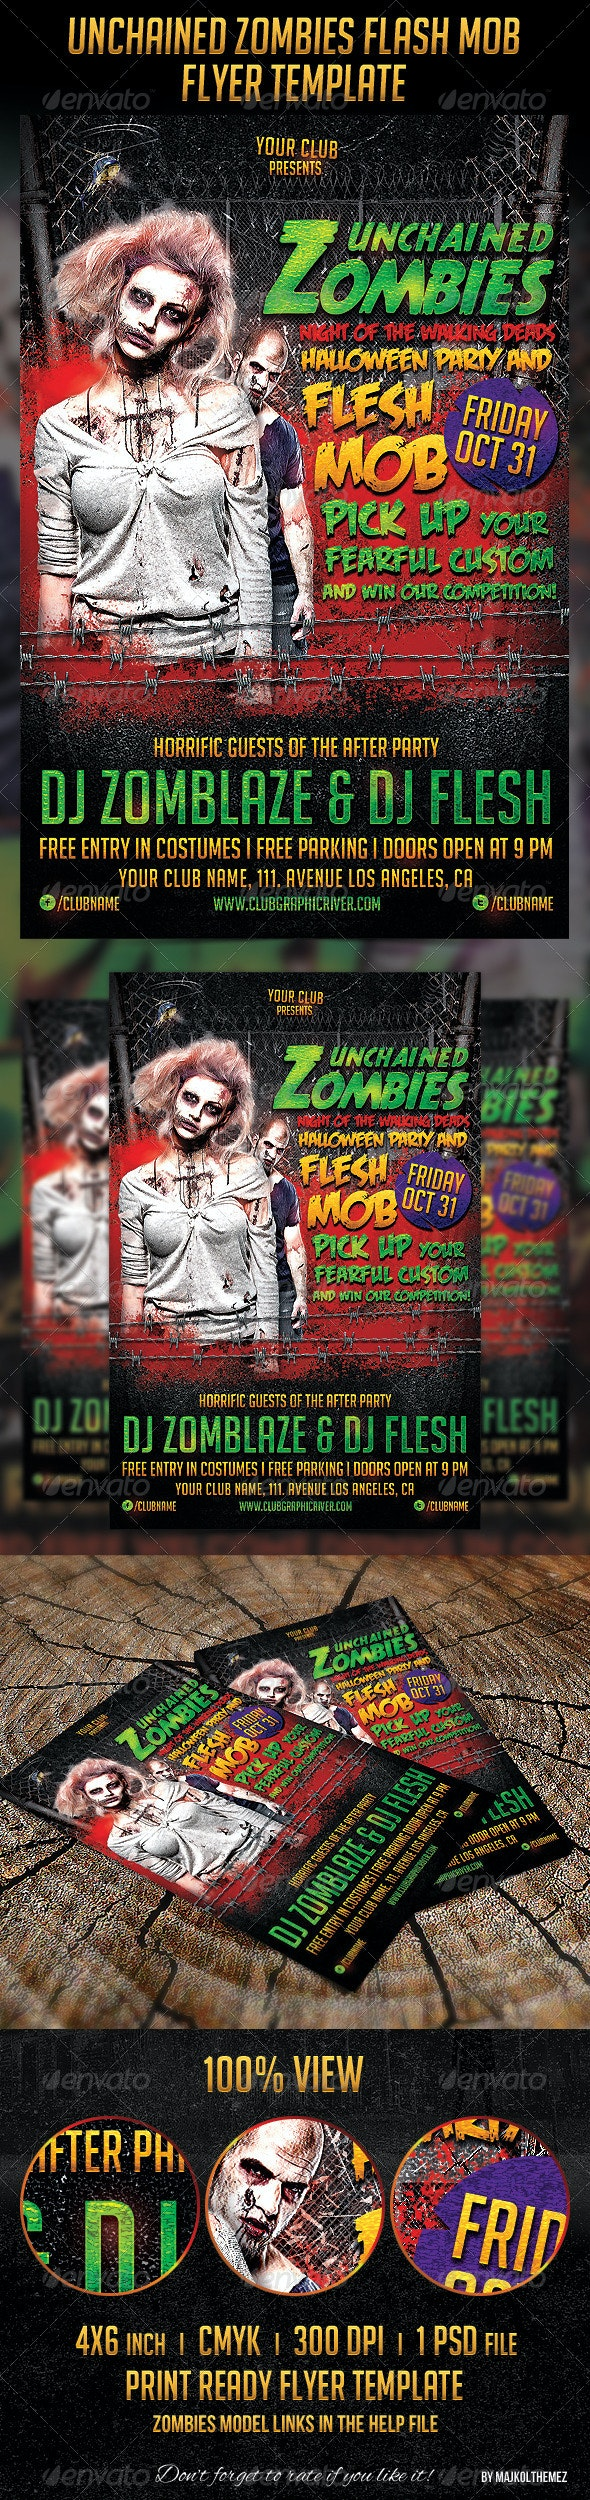 Unchained Zombies Flash Mob Party Flyer - Clubs & Parties Events